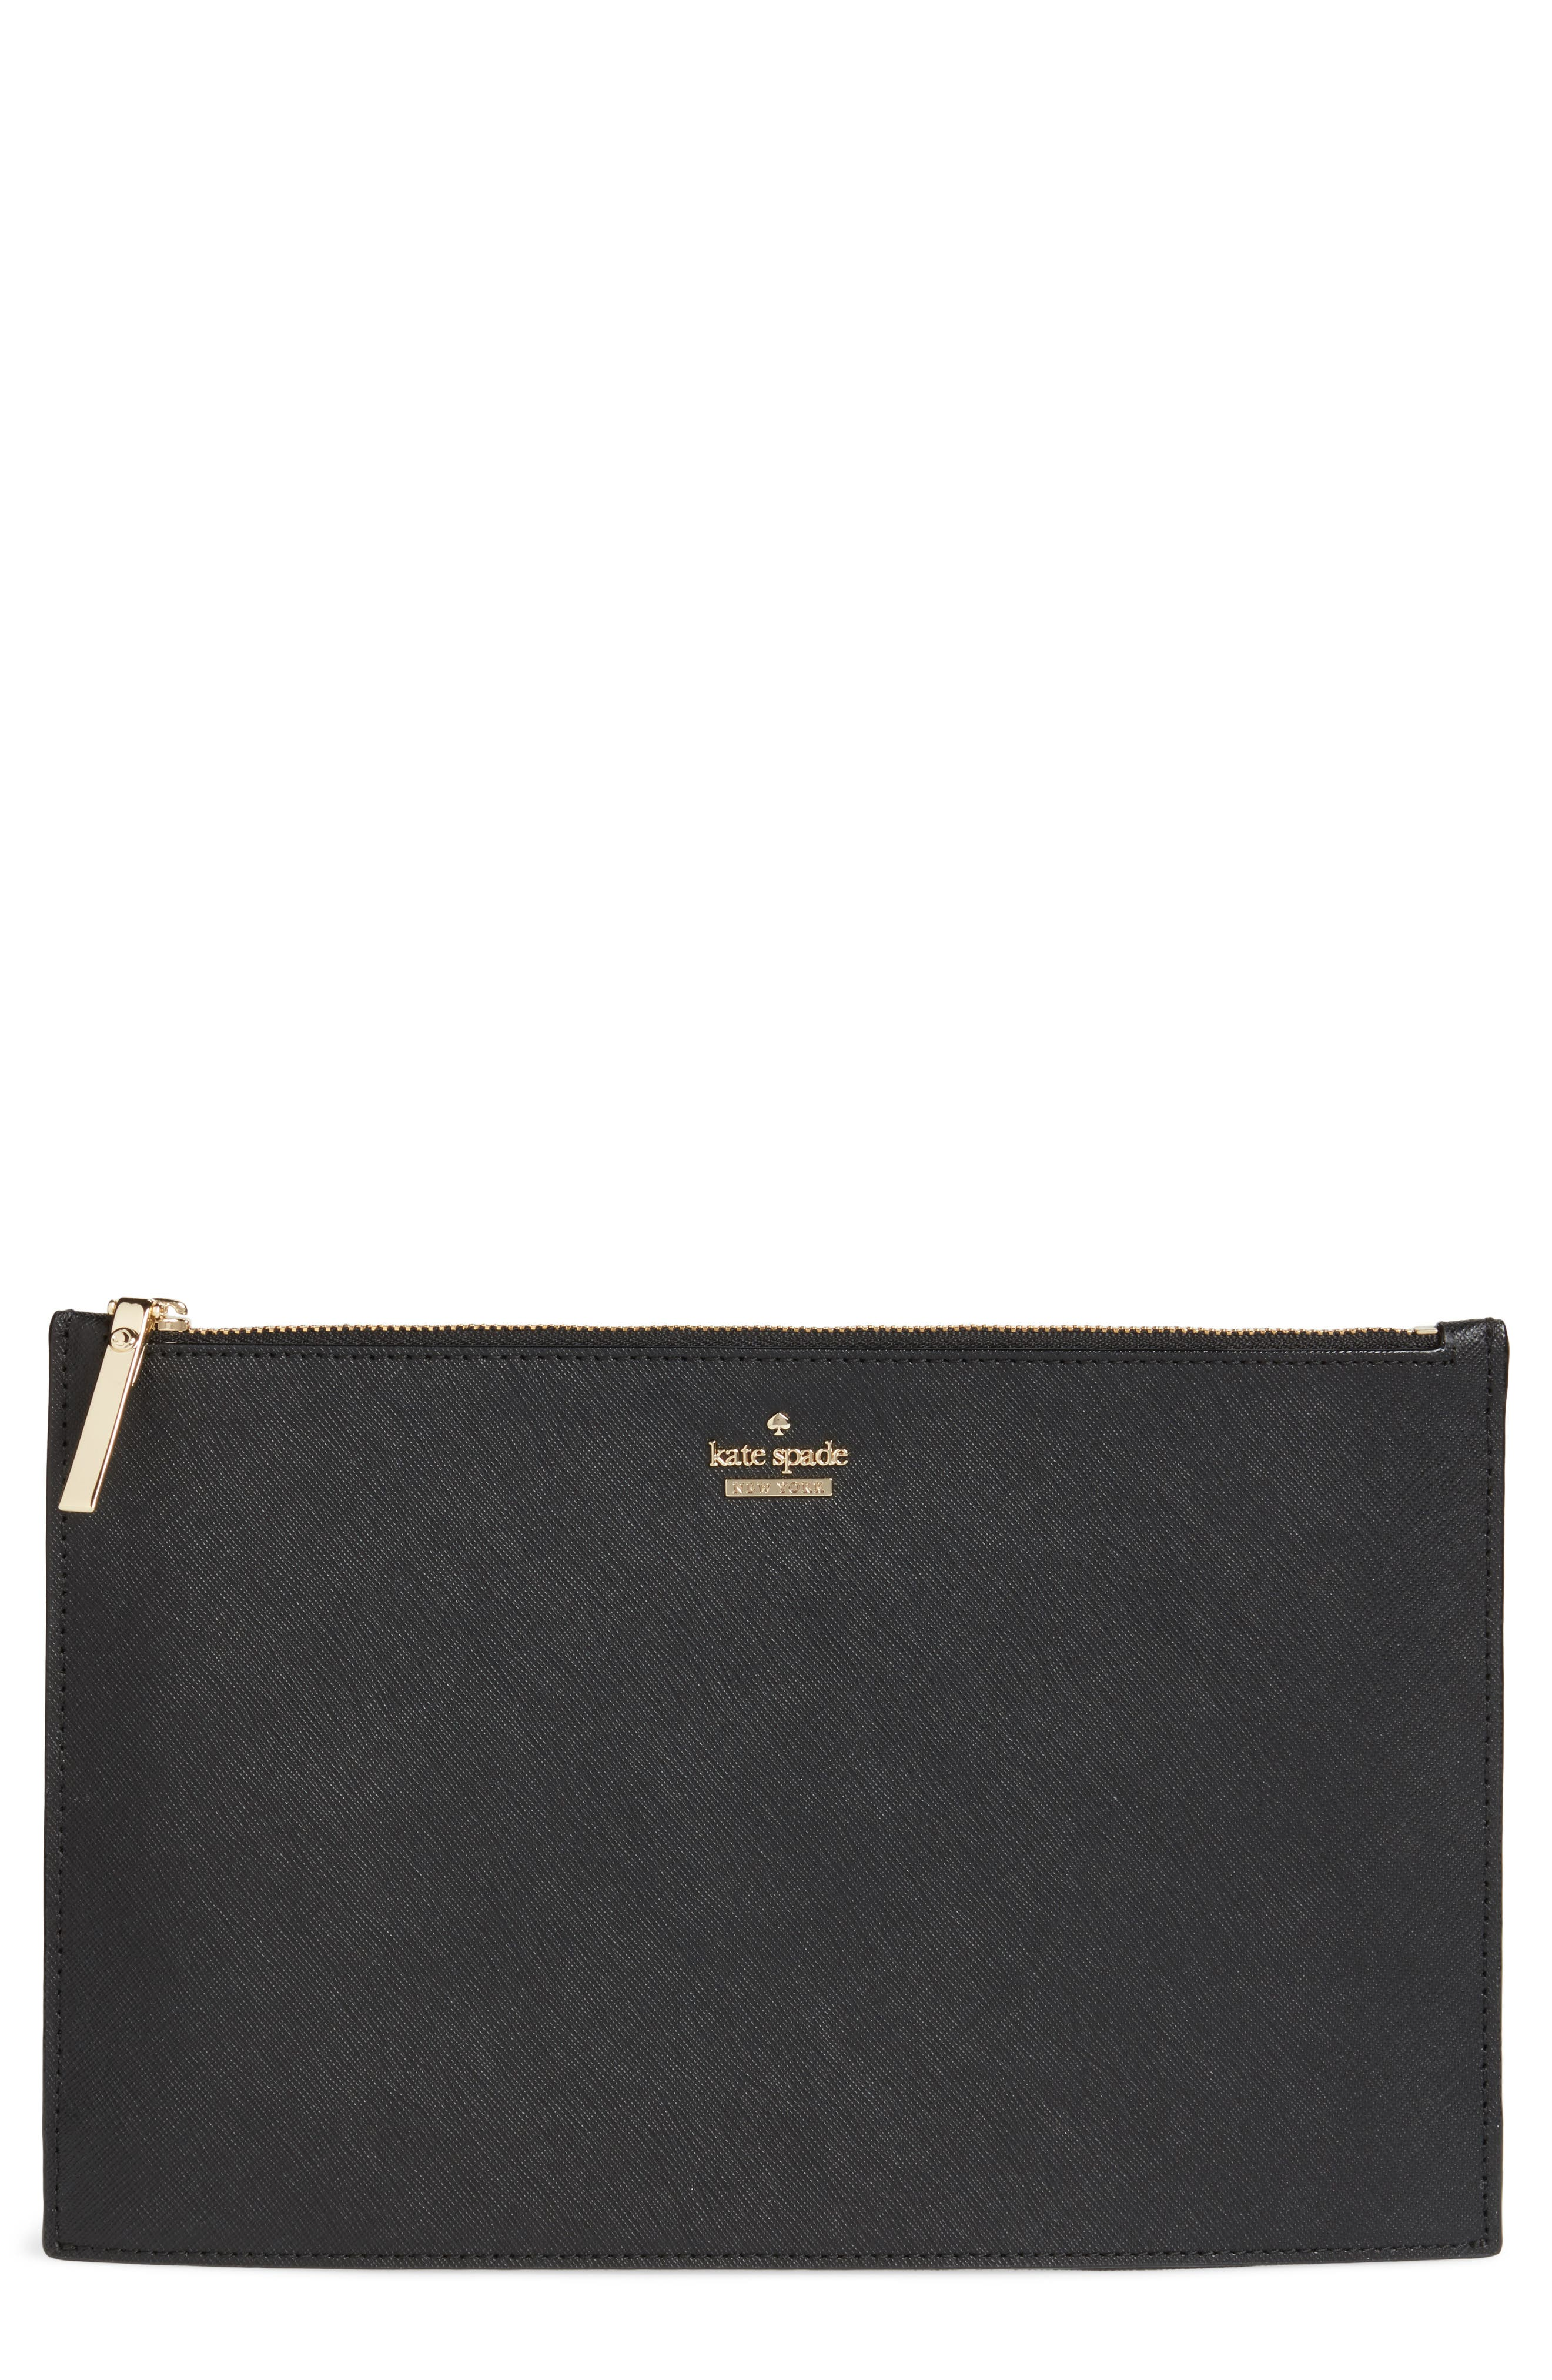 cameron street lilia leather clutch,                             Main thumbnail 1, color,                             001